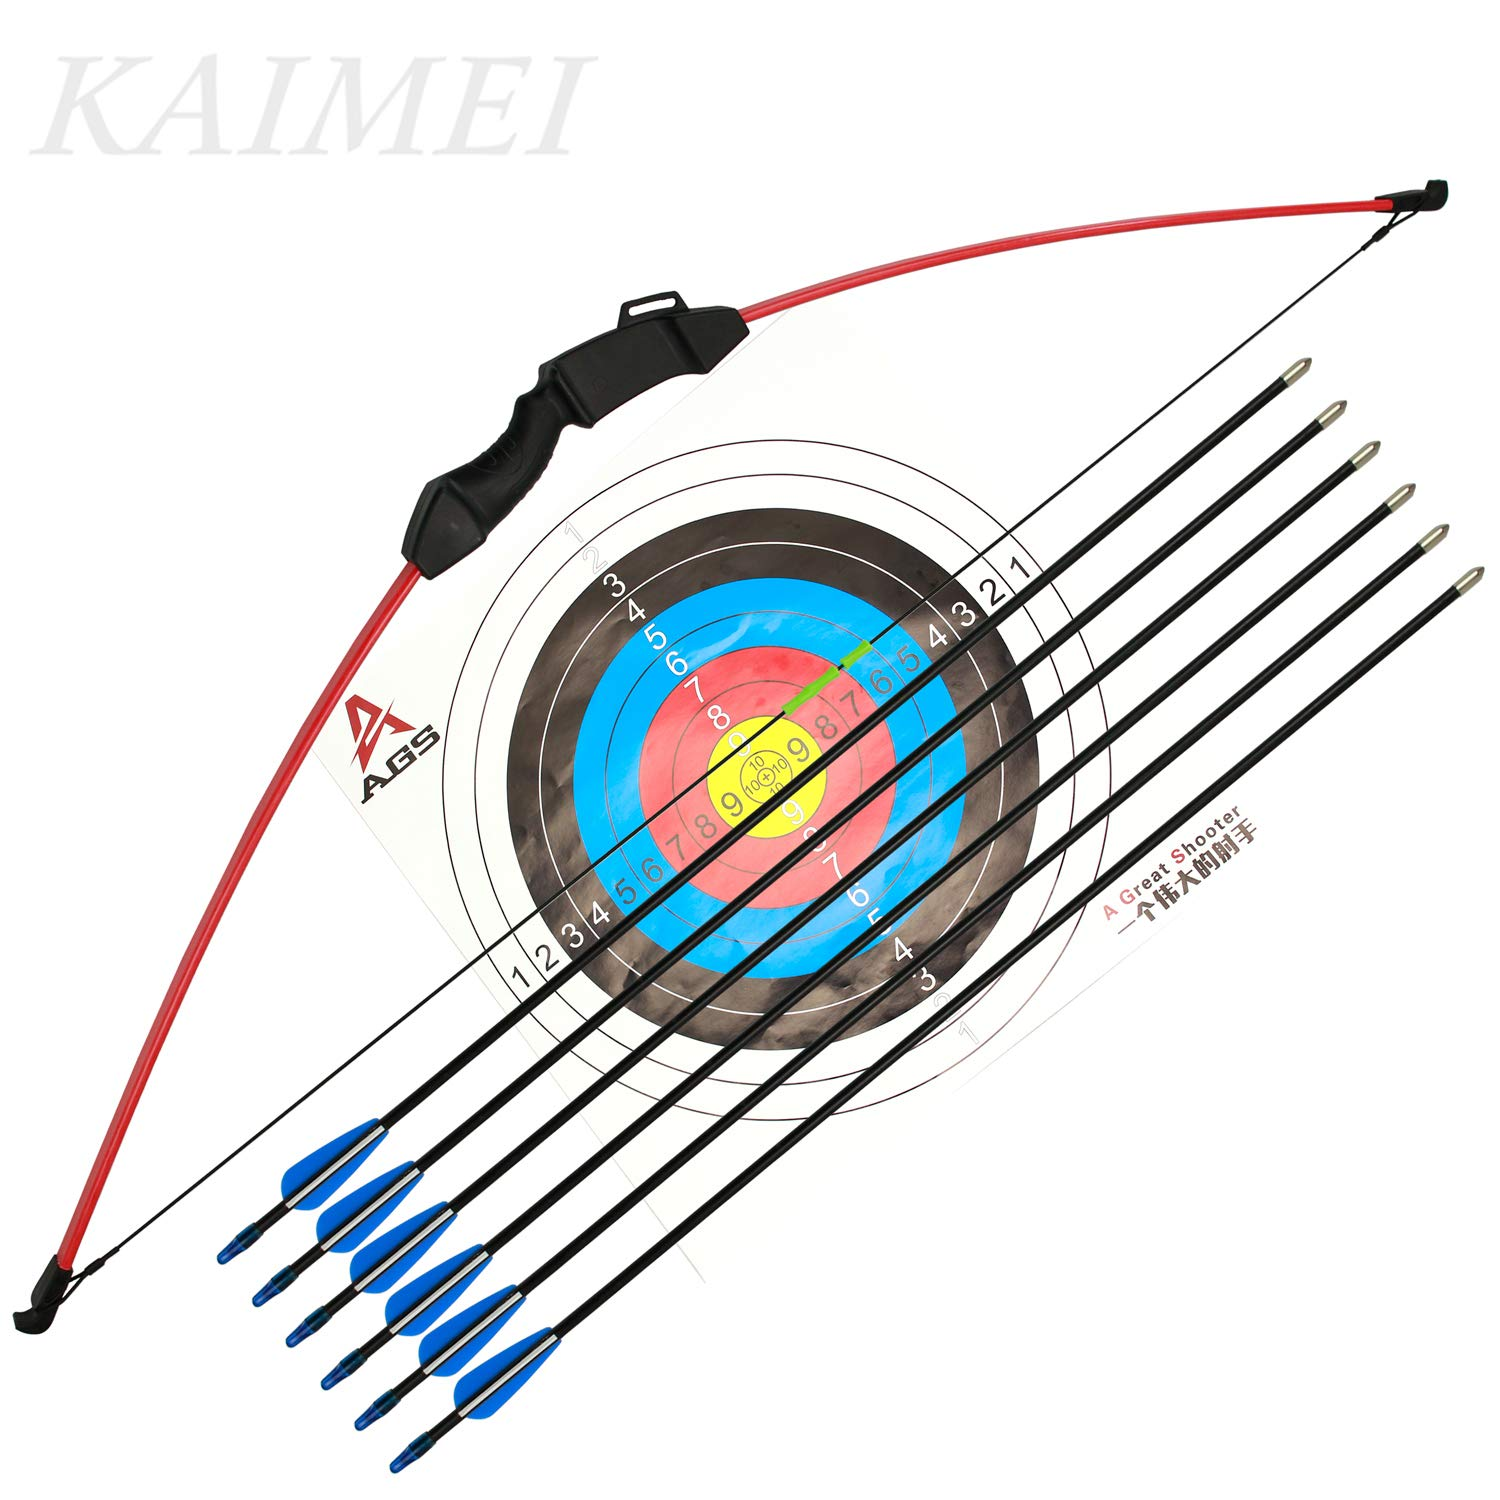 kaimei 43 Inch Recurve Bow Archery Red Limbs for Youth Beginner Practice and Outdoor Shooting Right and Left Hand with 6 Fiberglass Arrows and 2 Target Paper by kaimei